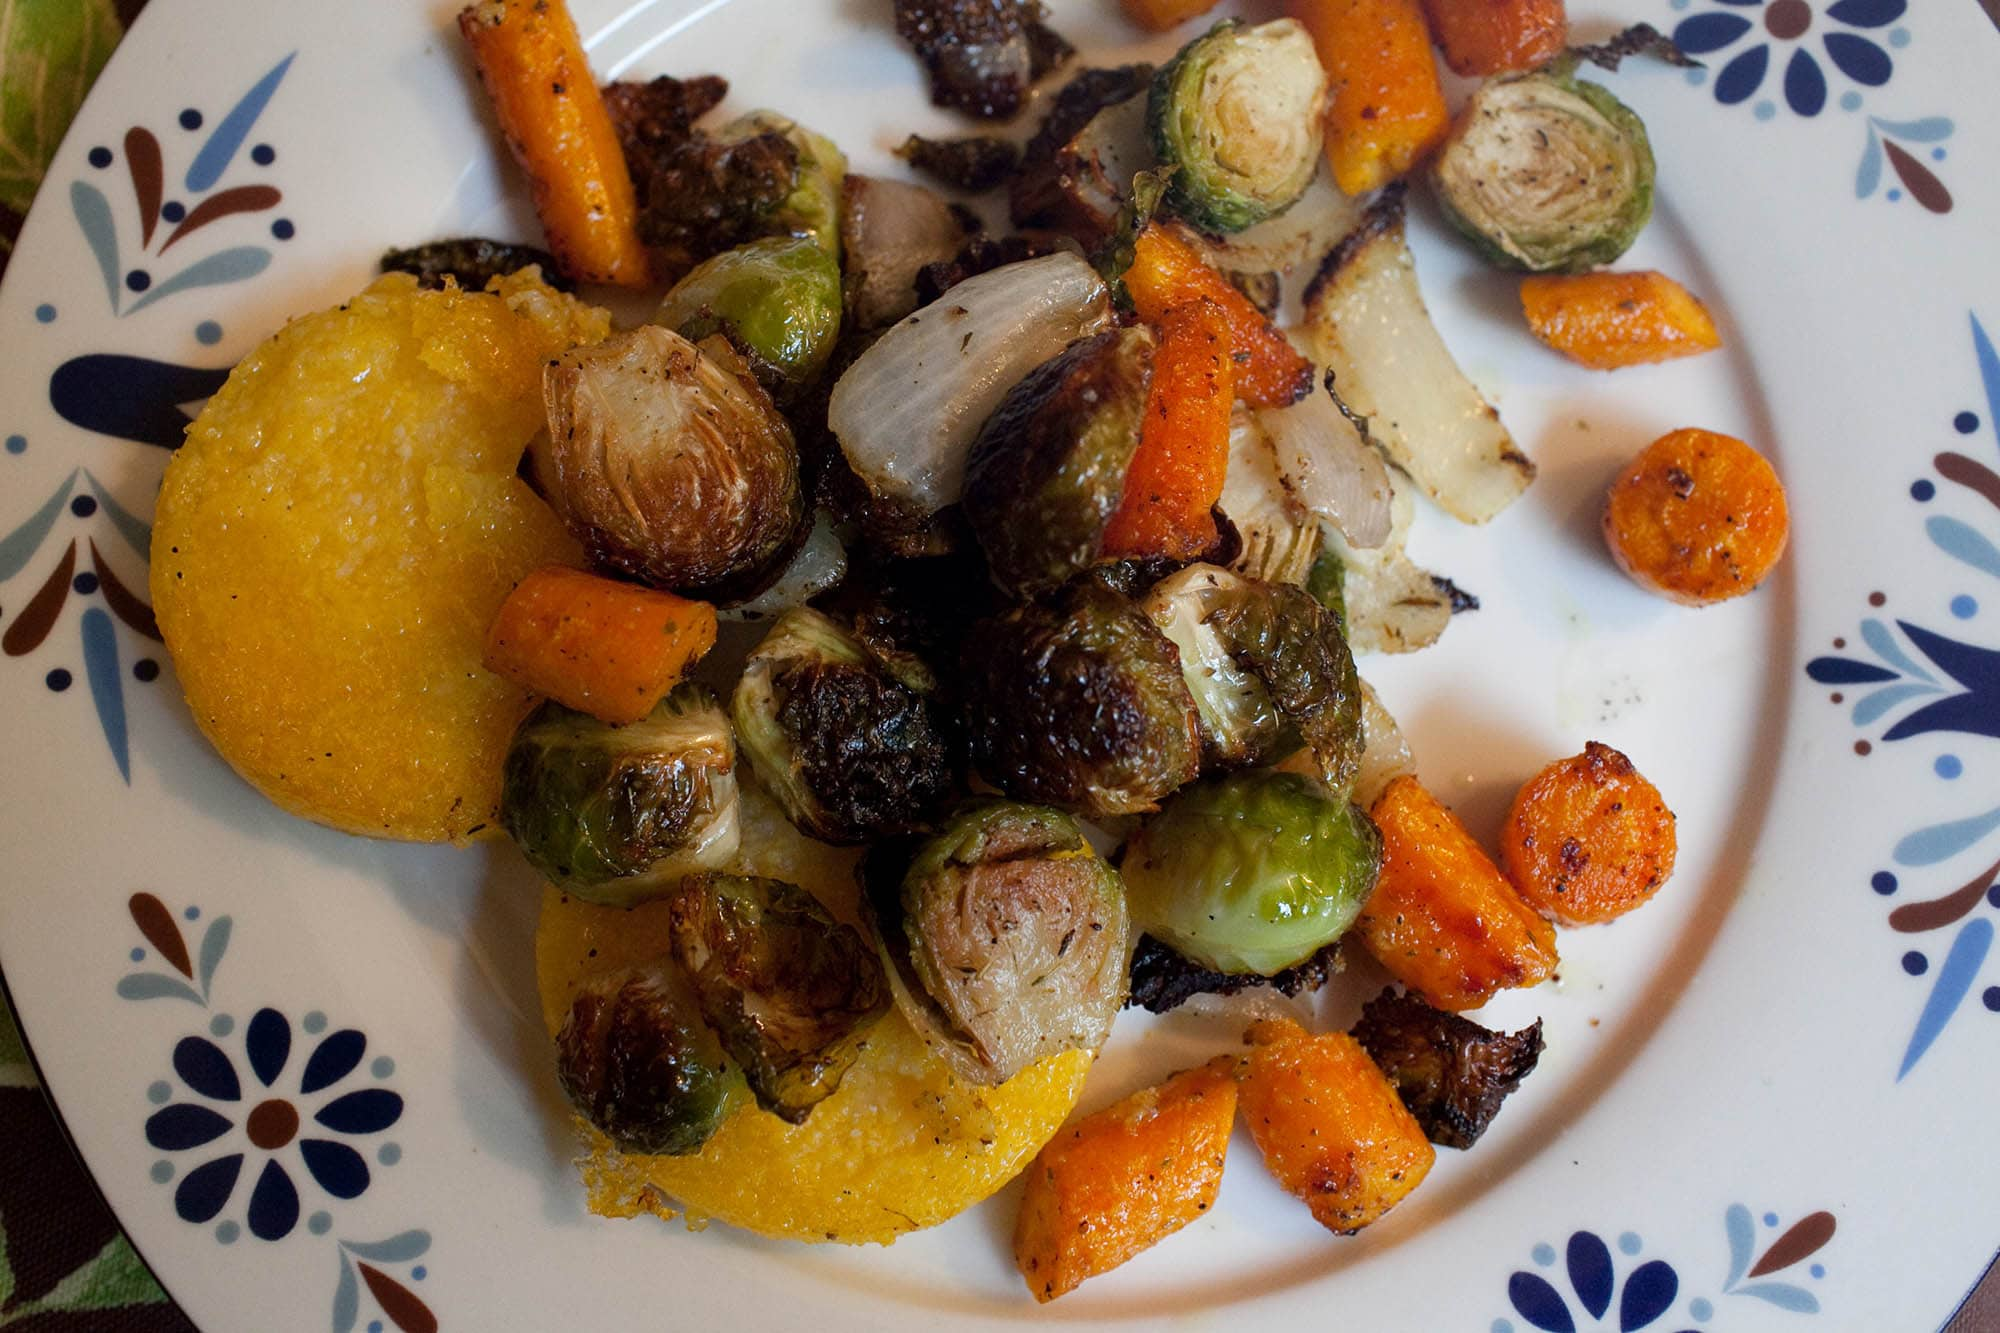 Polenta with Brussels Sprouts and Carrots